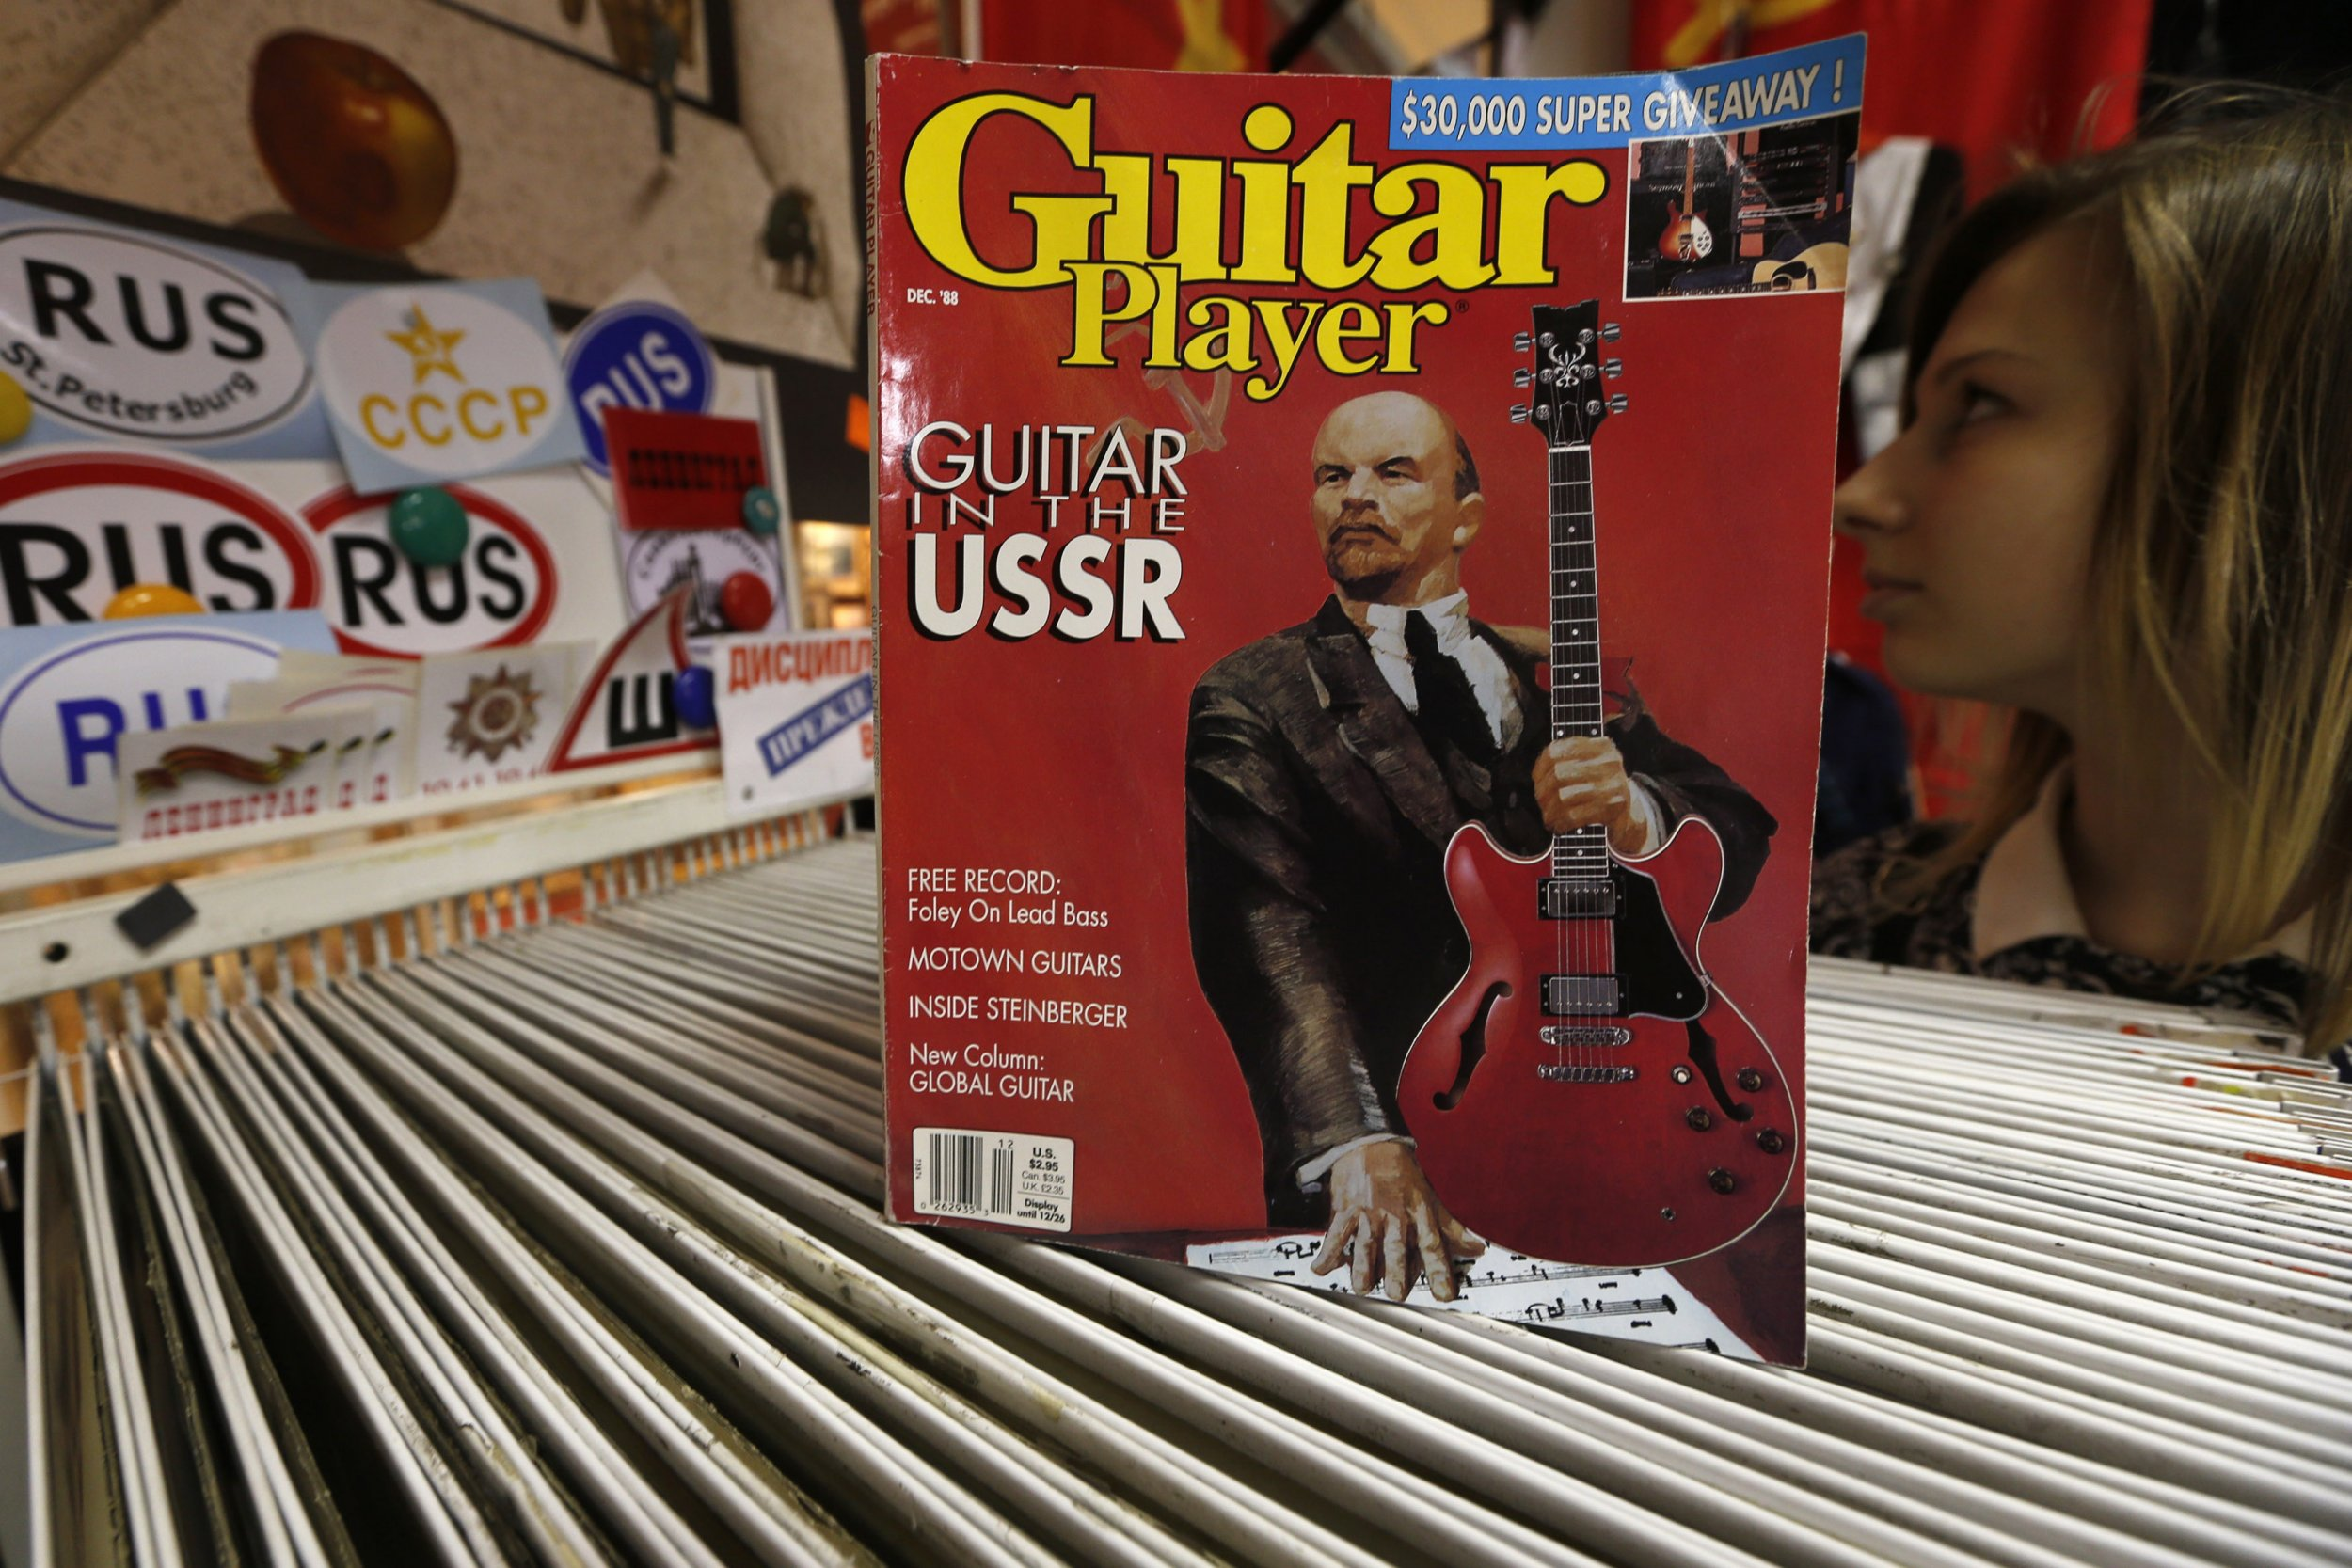 Lenin on the cover of Guitar Player